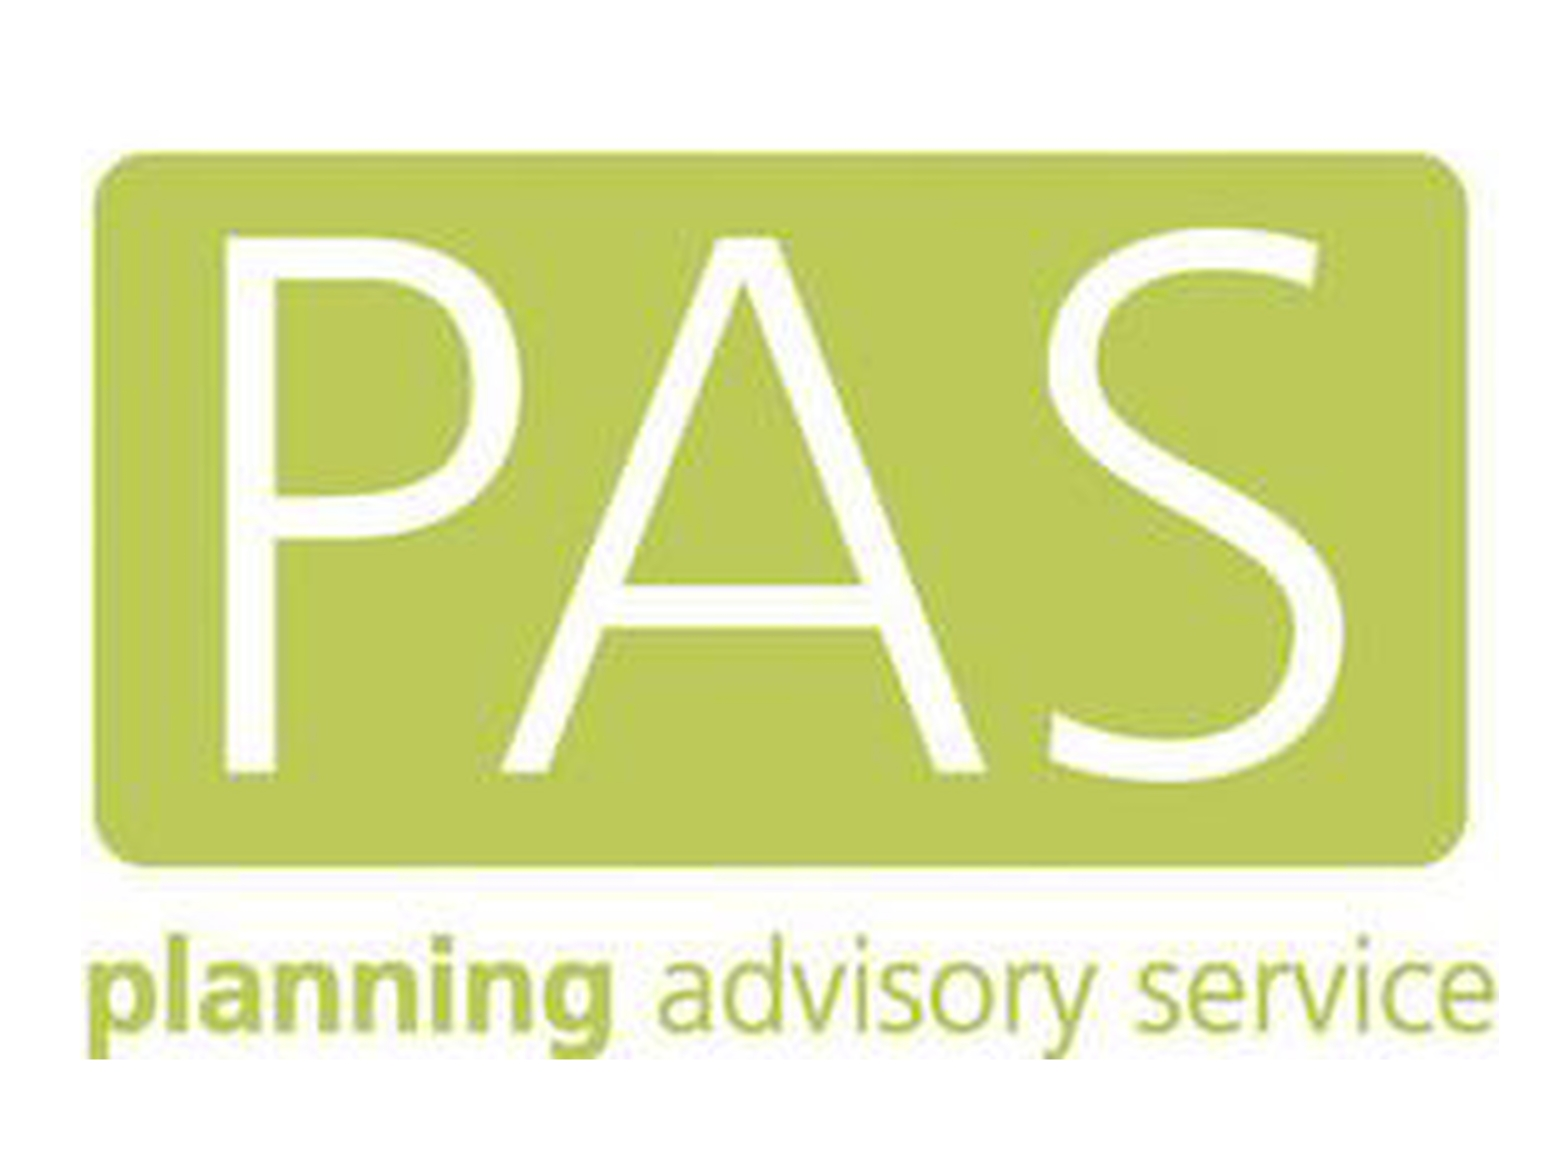 The Planning Advisory Service